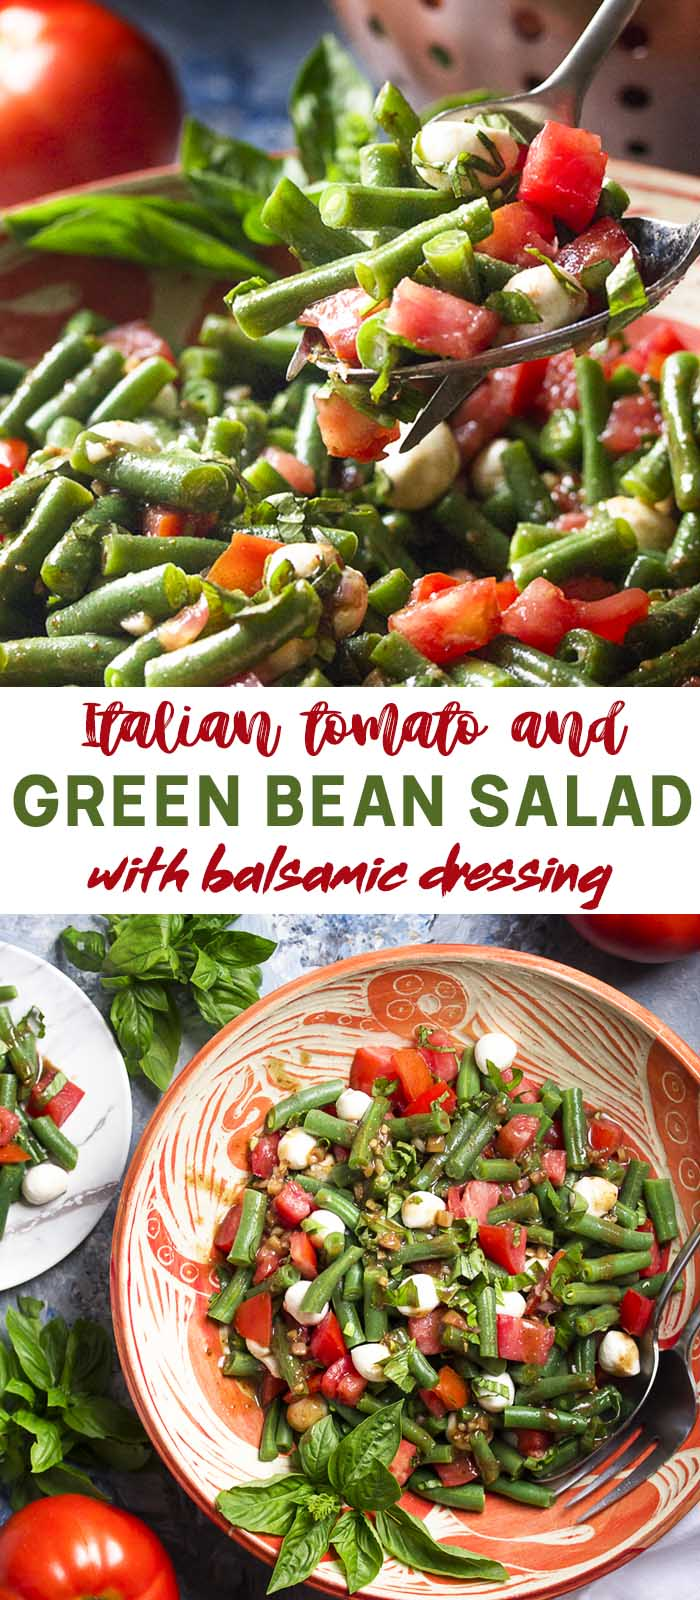 Salad in a serving bowl and being scooped out with text overlay - Green Bean Salad.